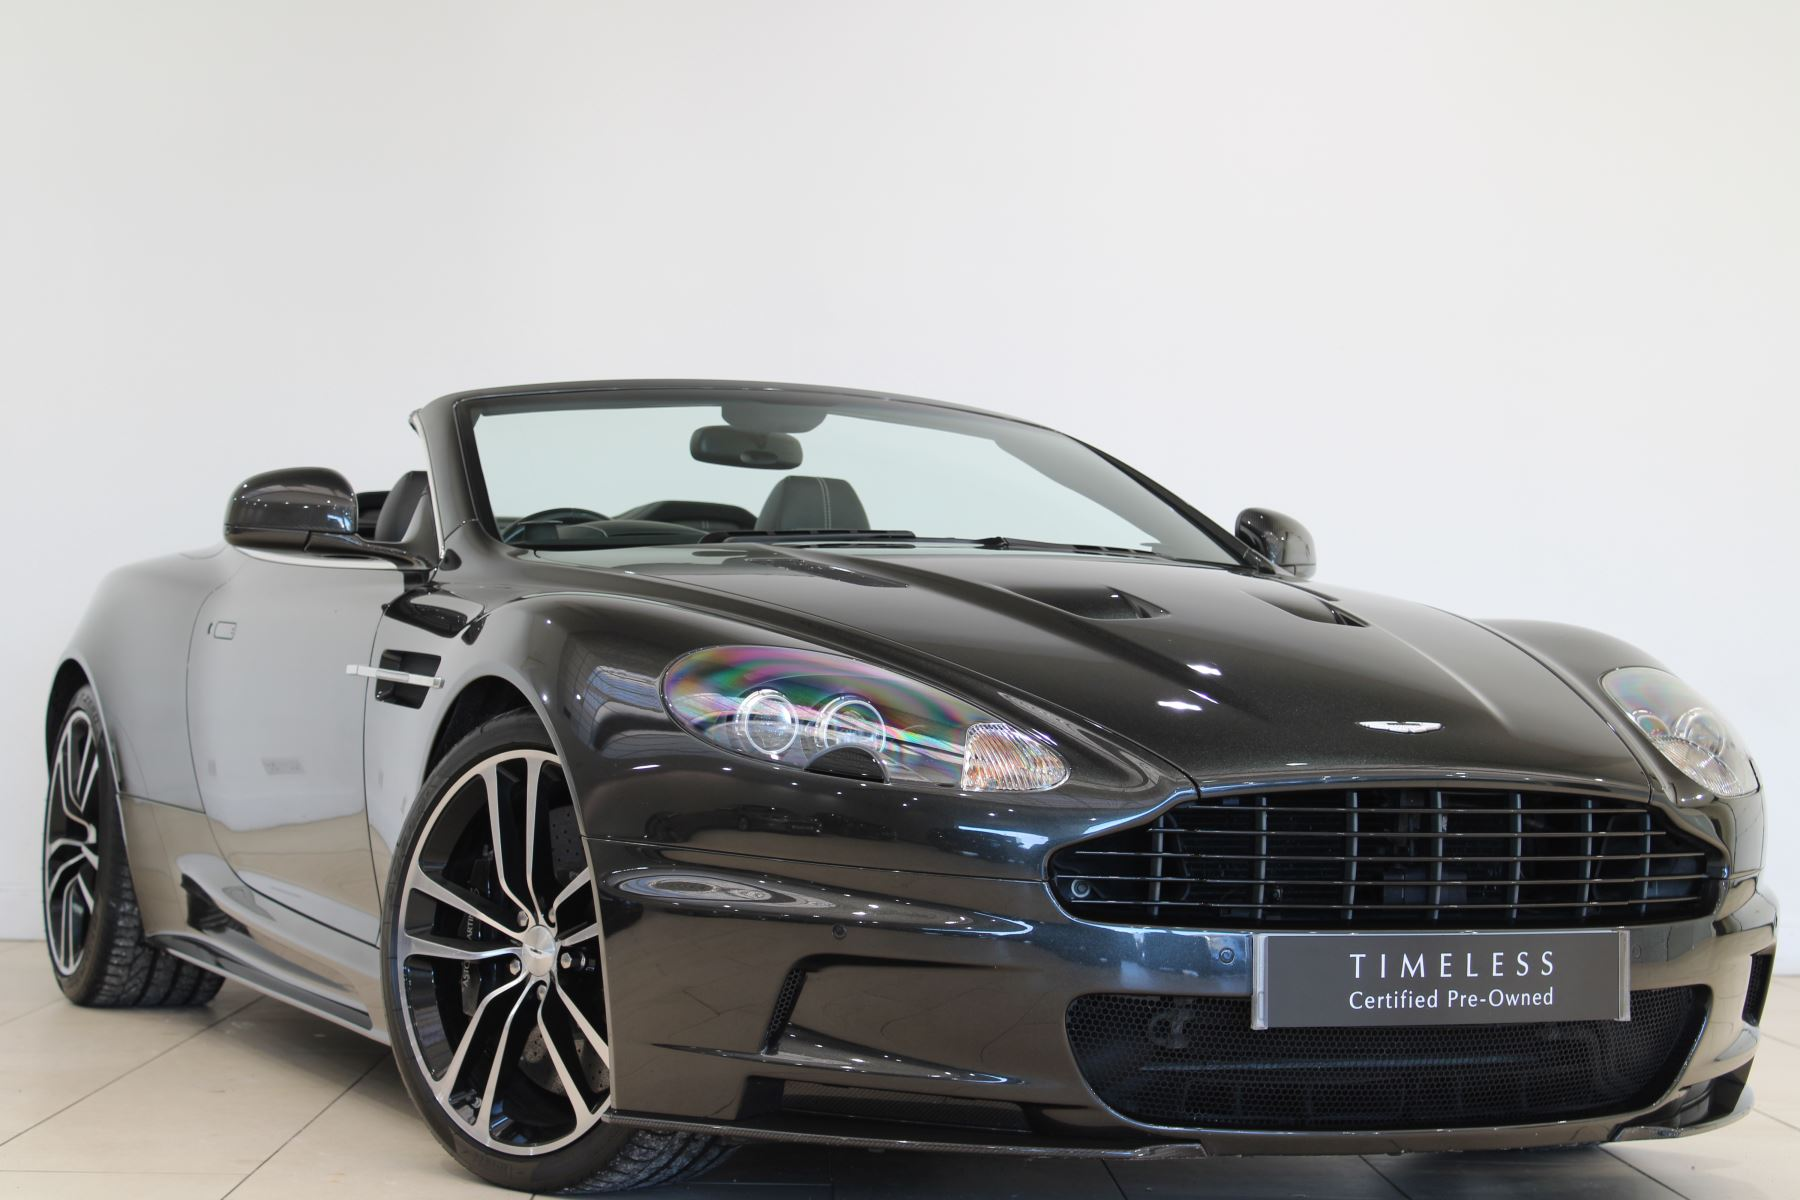 Aston Martin DBS CARBON V12 2dr Volante Touchtronic 5.9 Automatic Convertible (2012)